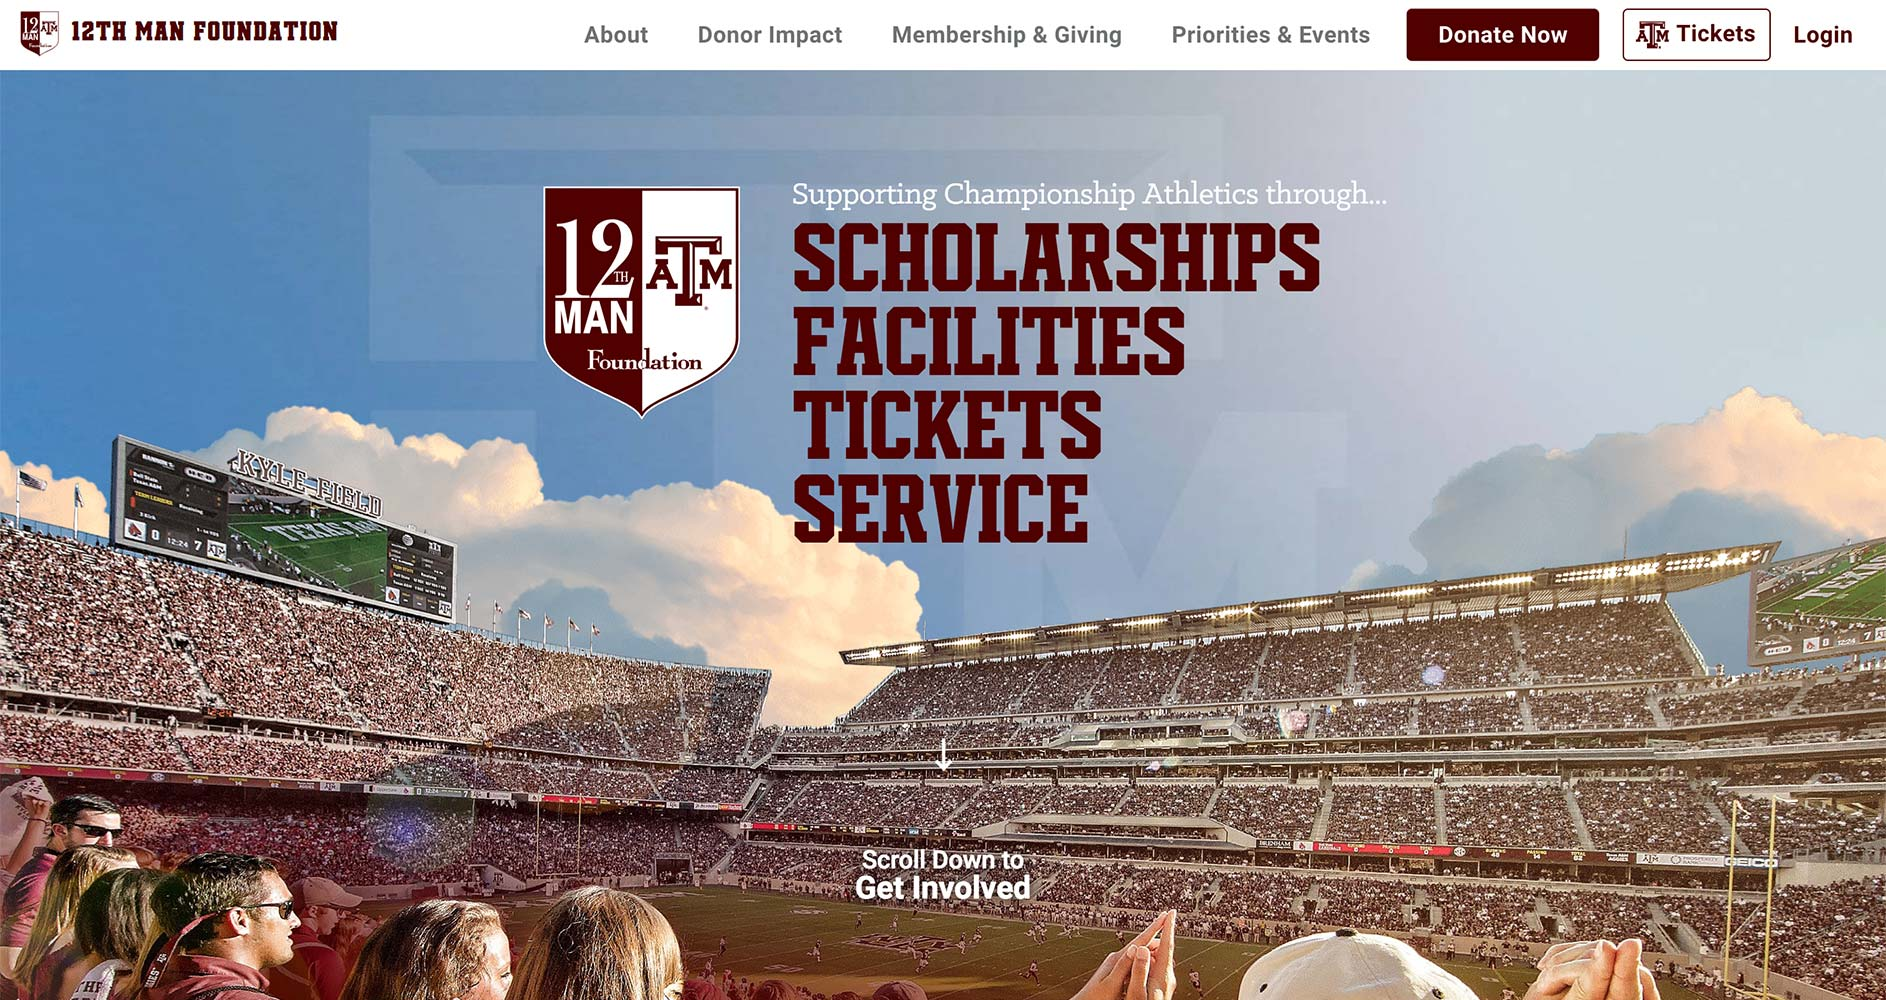 12th Man Foundation Website | <a href='https://12thmanfoundation.com/' target='_blank'>Visit Site <i class='nc-icon-glyph arrows-1_share-91'></i></a><br><span>Texas A&M University</span>